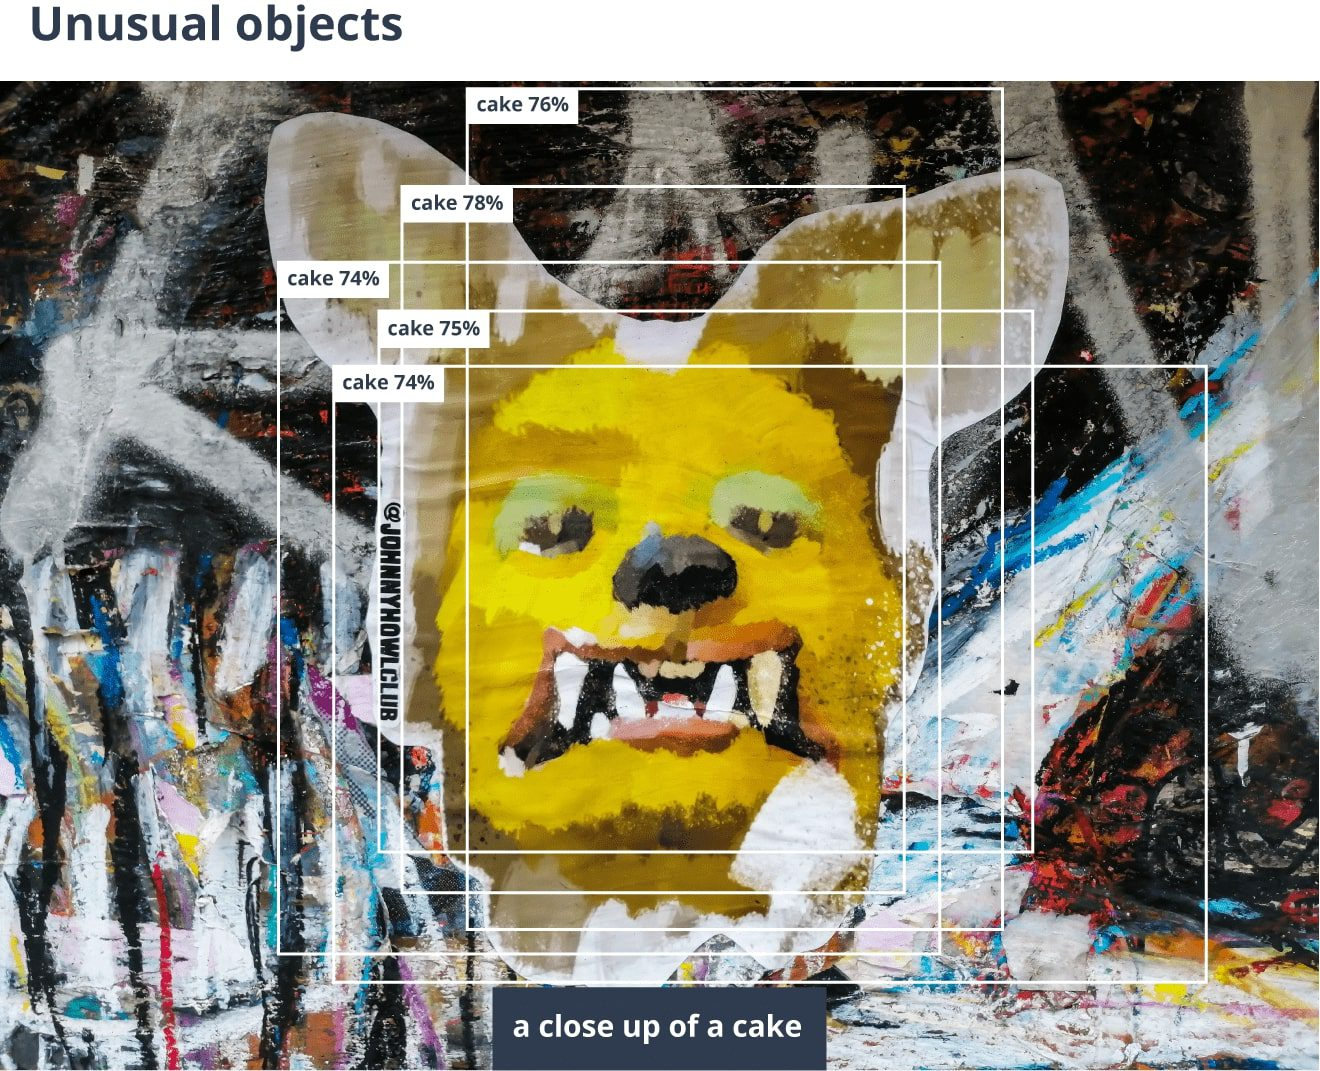 An error made by AI image captioning model